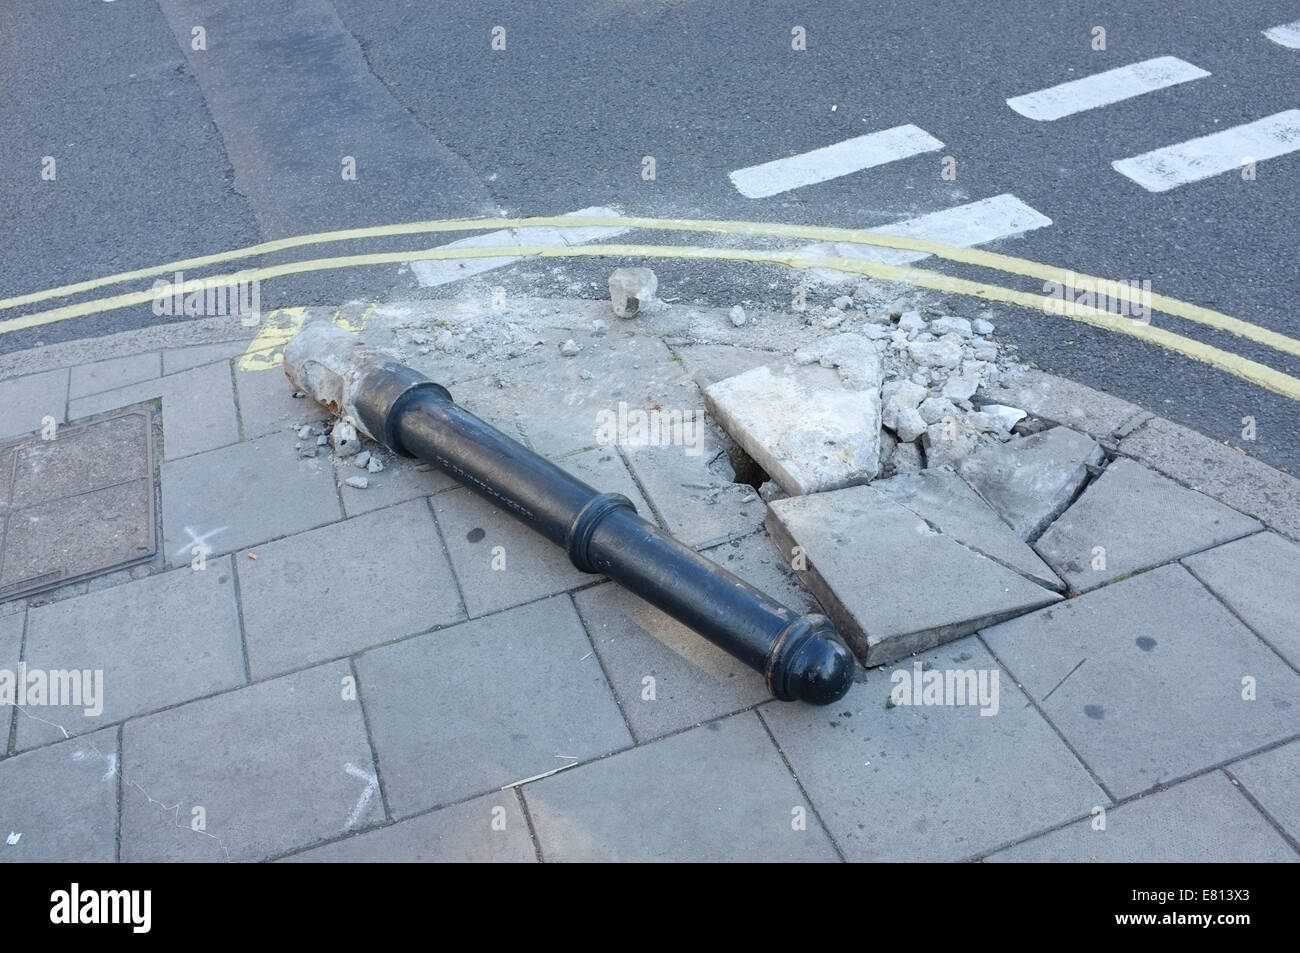 Street furniture damage with broken paving stones at road junction. - Stock Image